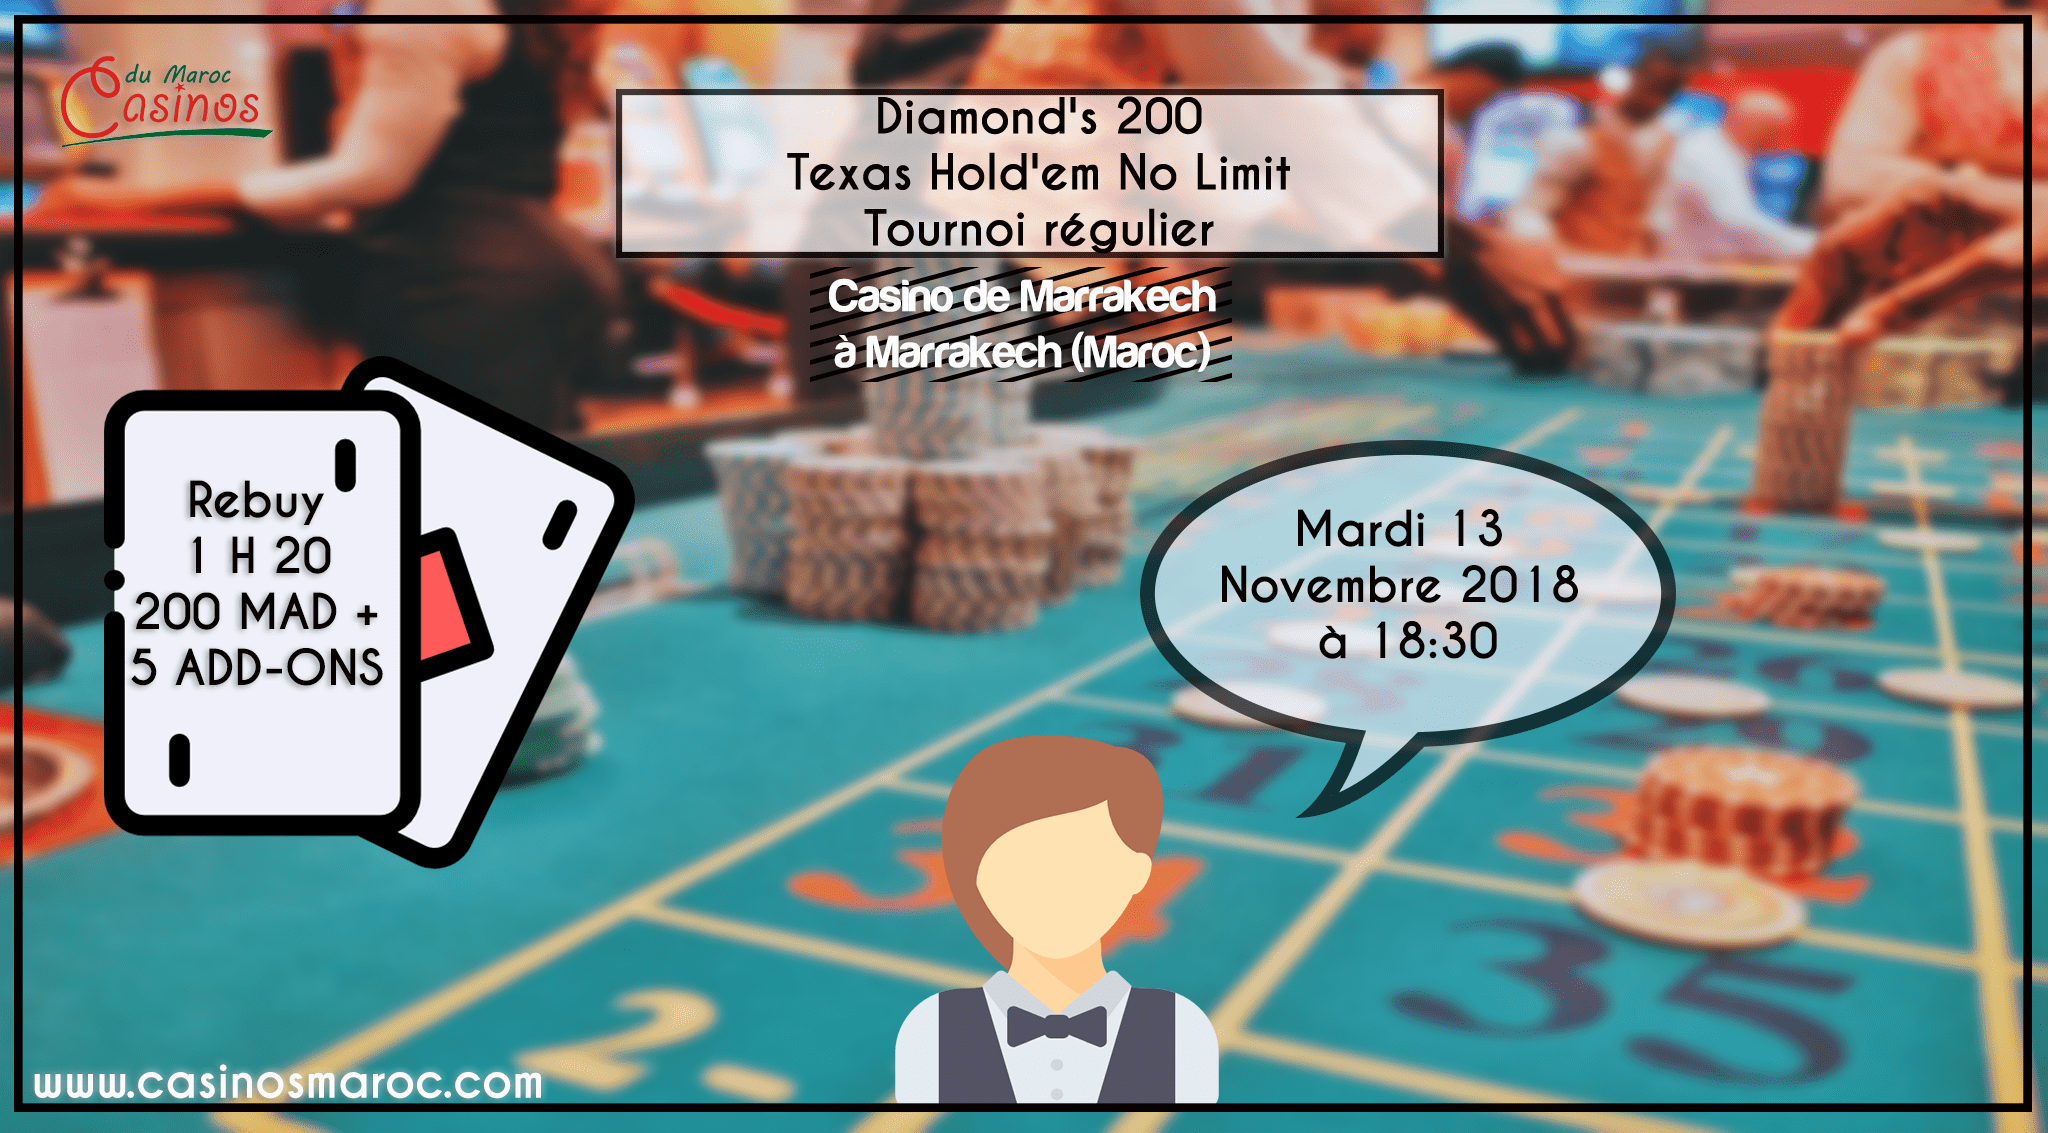 diamond-s-200-texas-hold-em-no-limit-tournoi-regulier-marrakech-maroc